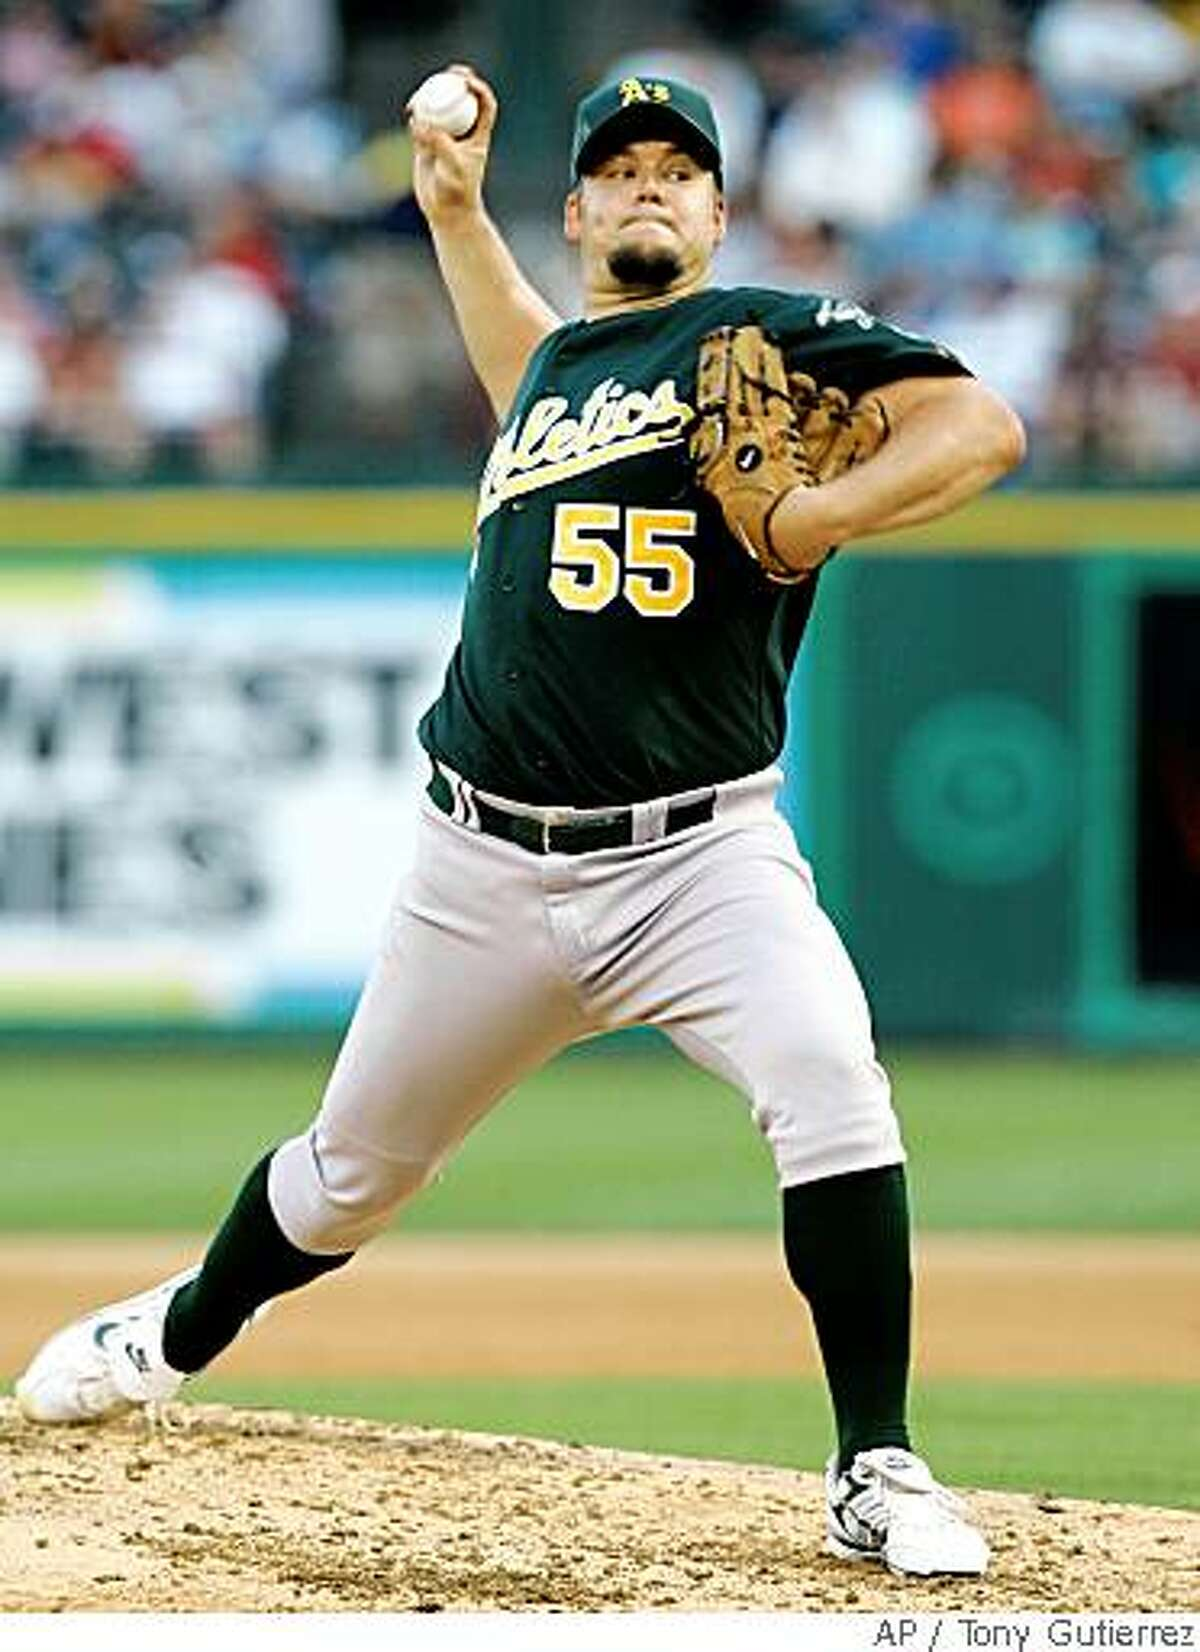 Oakland Athletics starting pitcher Joe Blanton (55) delivers to the Texas Rangers in the third inning of a Major League Baseball game, Saturday, May 31, 2008, in Arlington, Texas. (AP Photo/Tony Gutierrez)